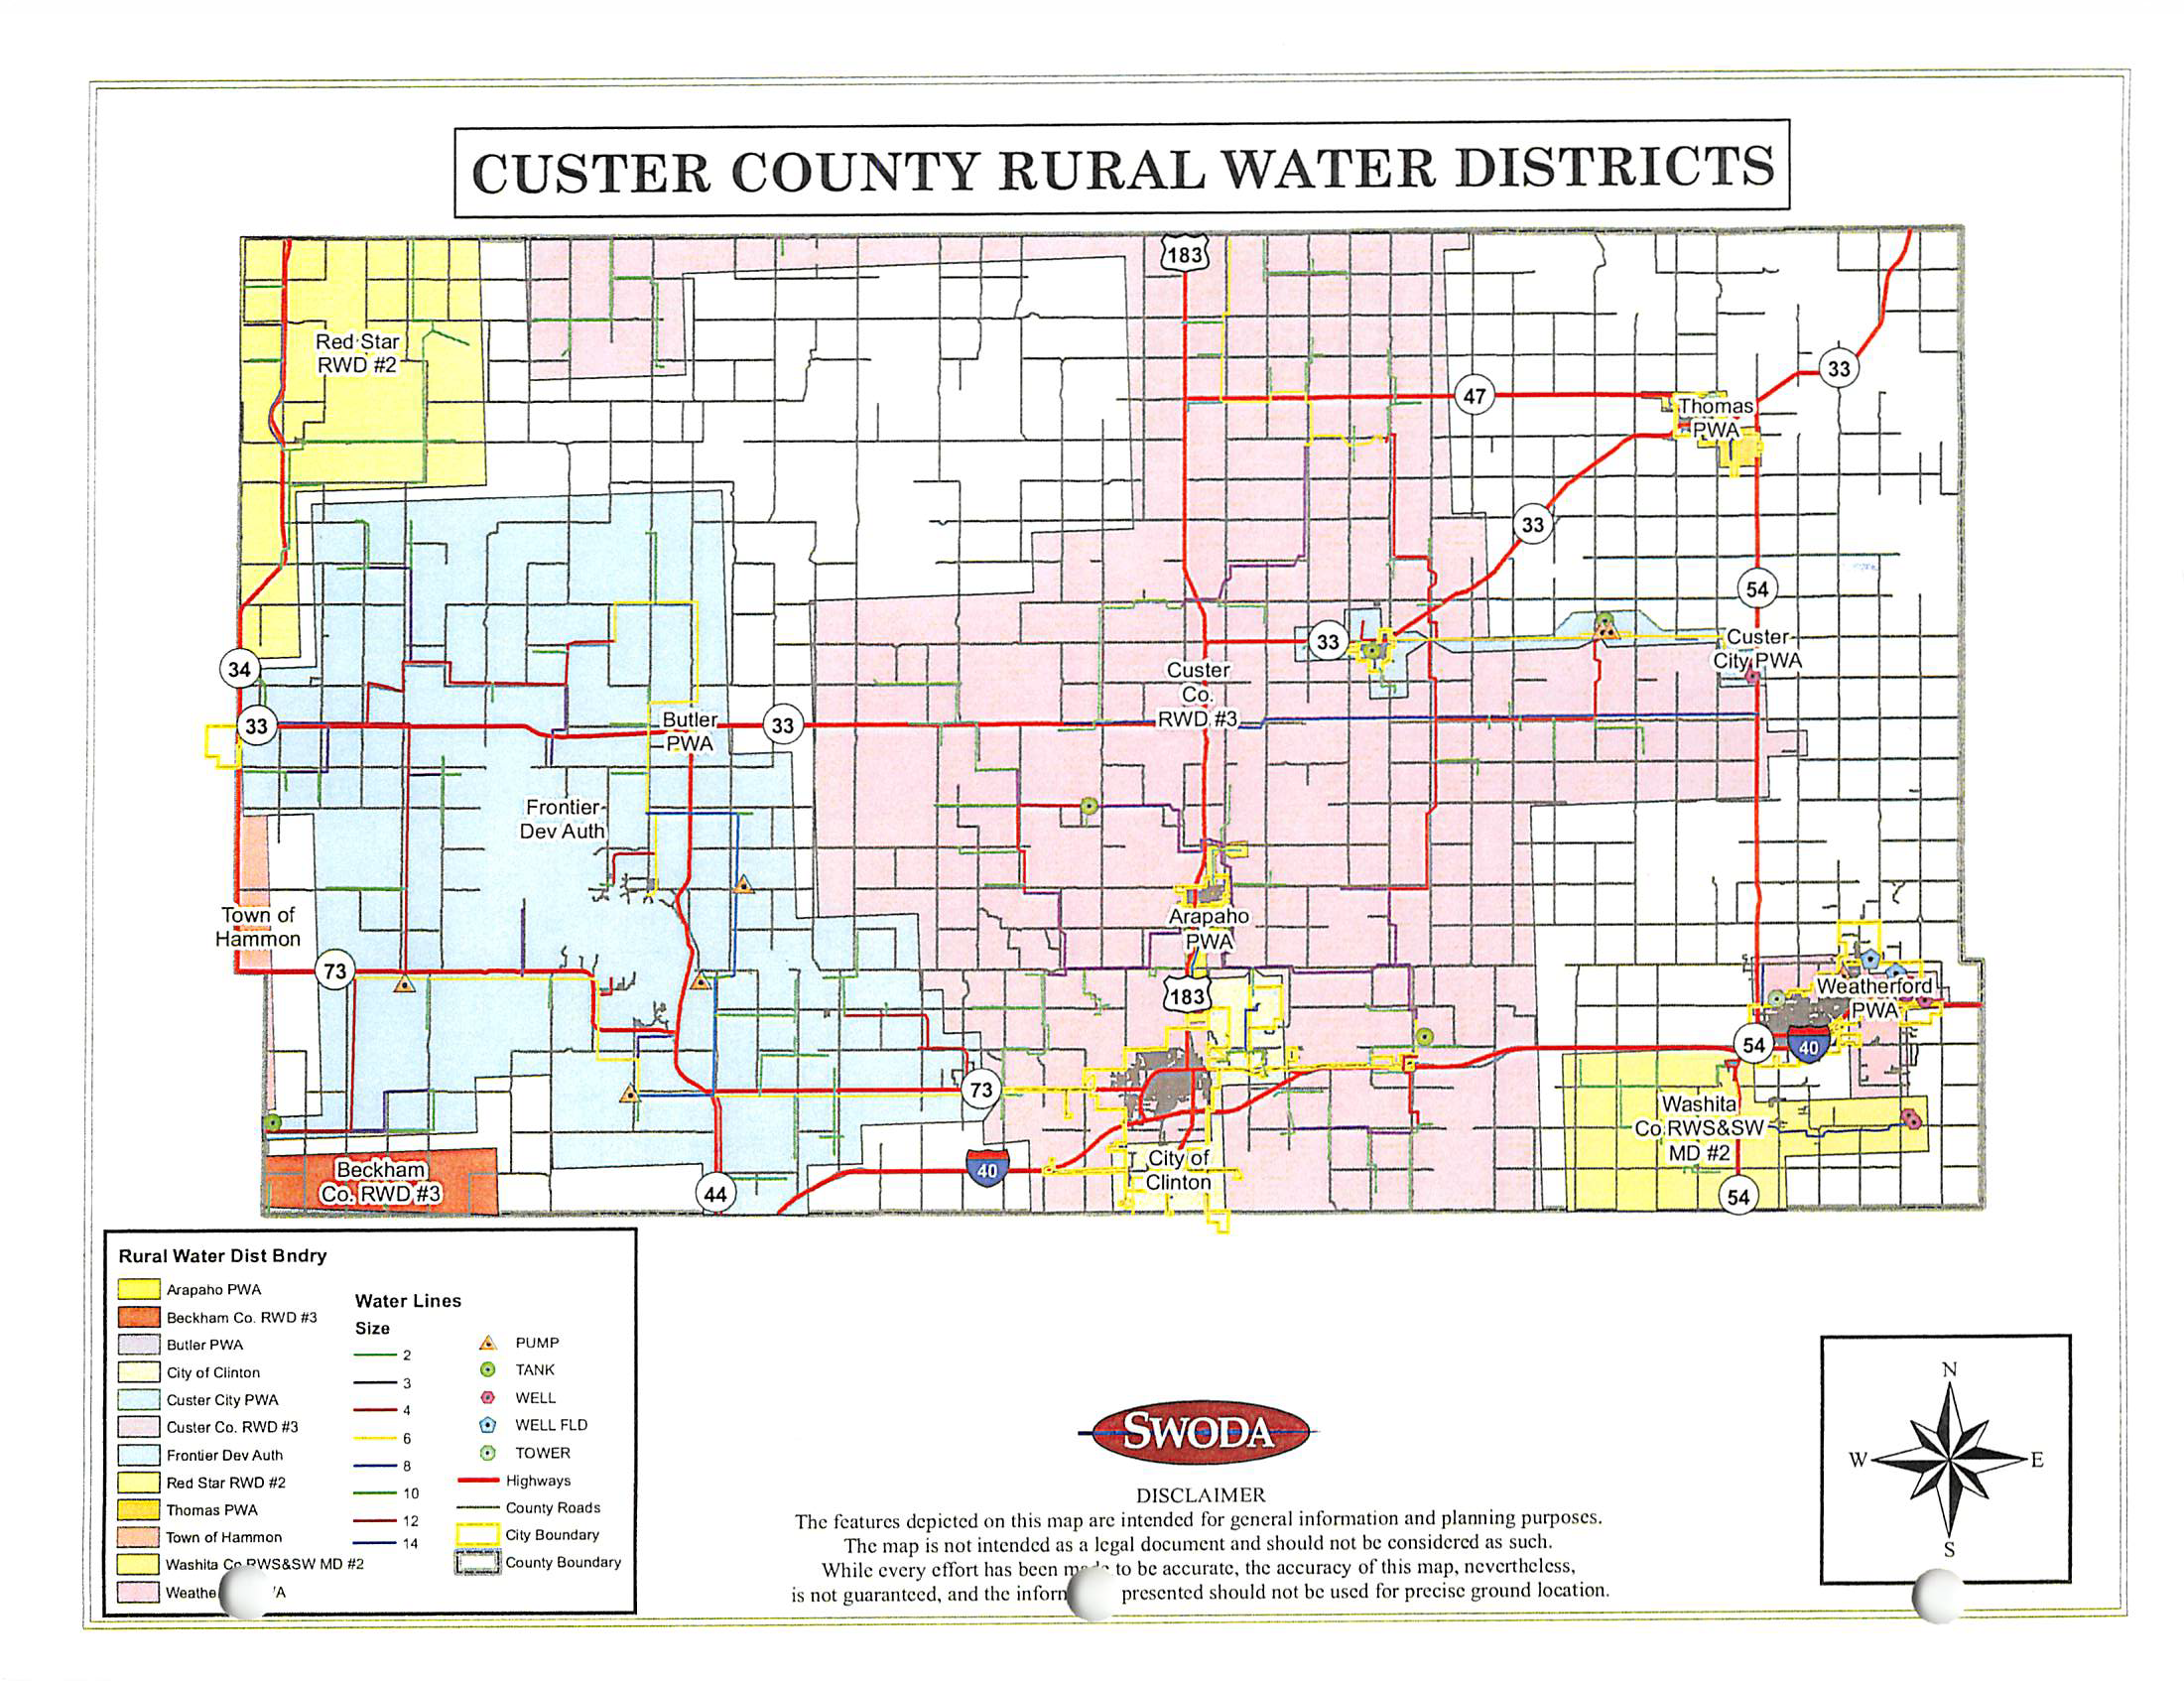 Custer County Rural Water Districts